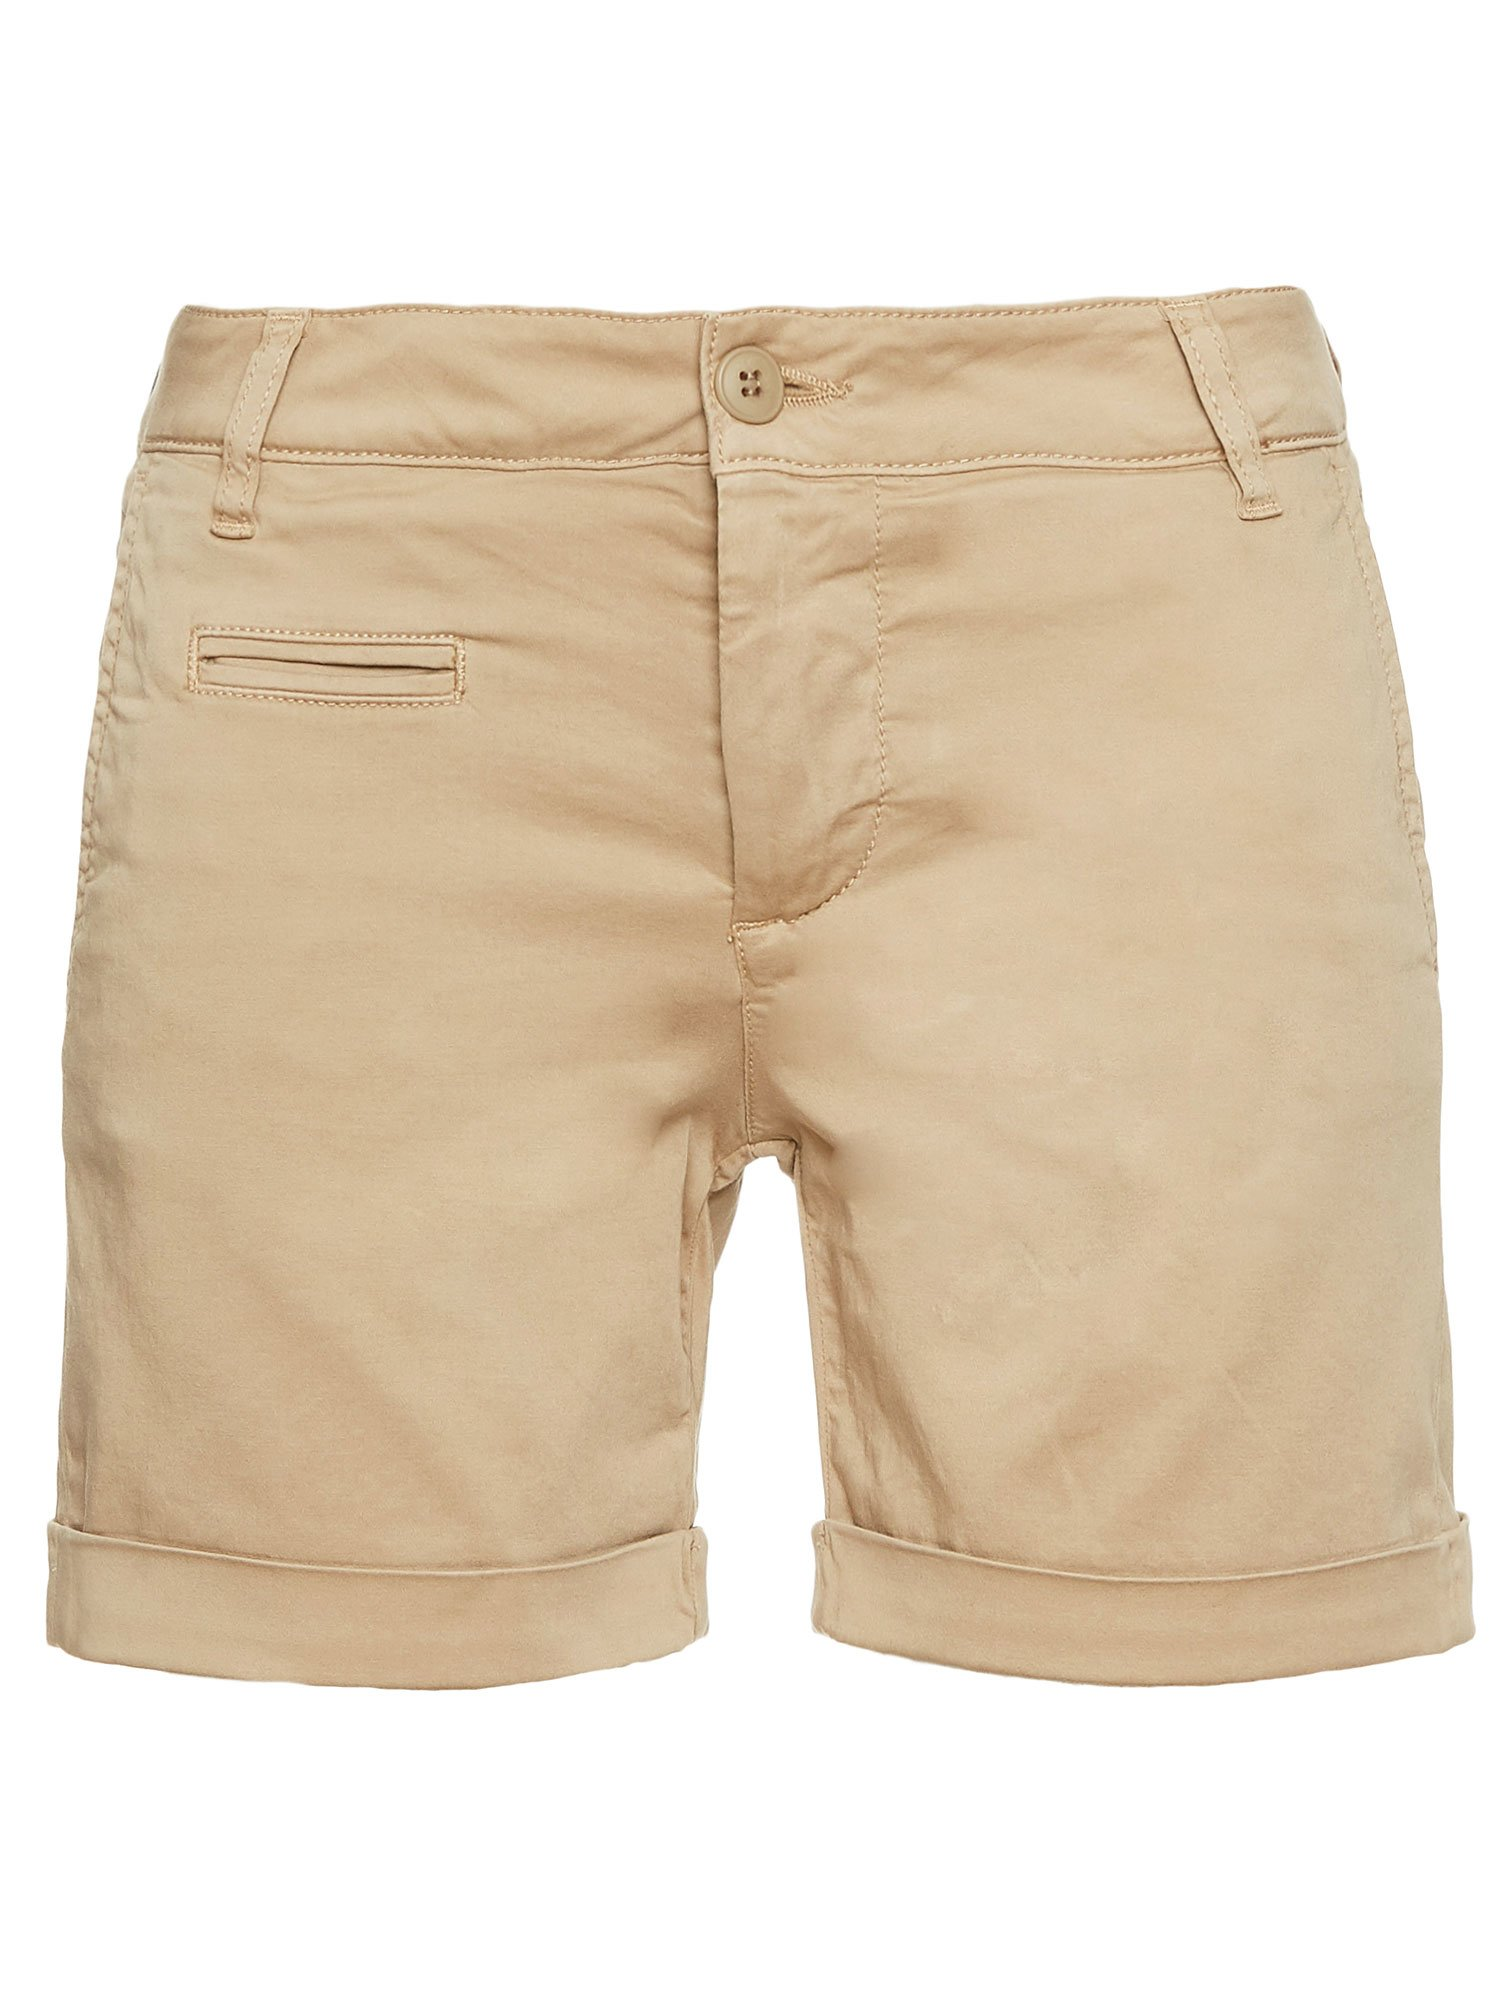 Blauer - COTTON SATIN BERMUDA SHORTS - Biscuit - Blauer